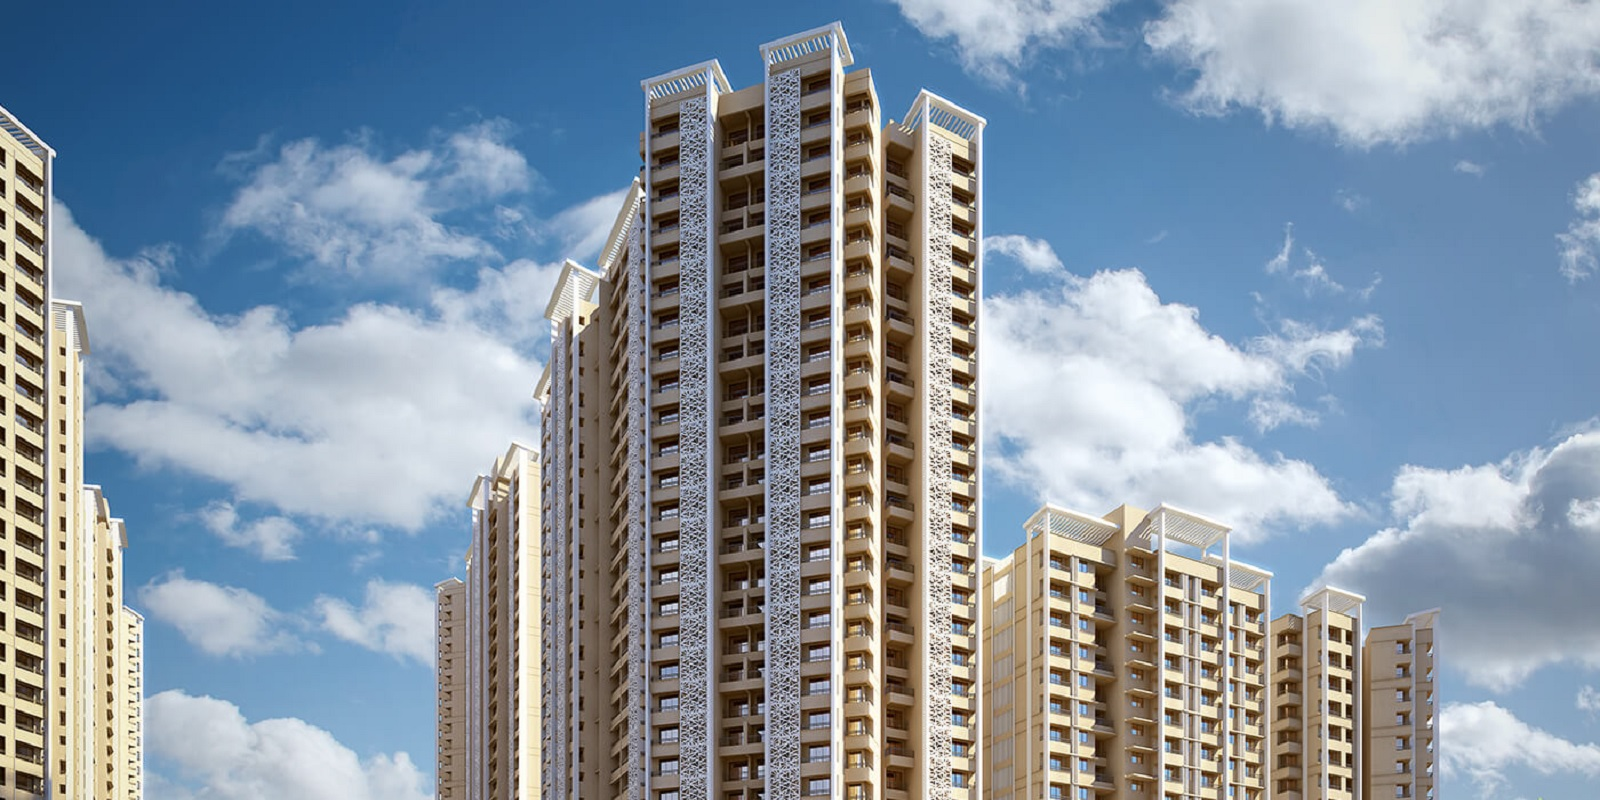 raunak city sector 4 d7 project large image2